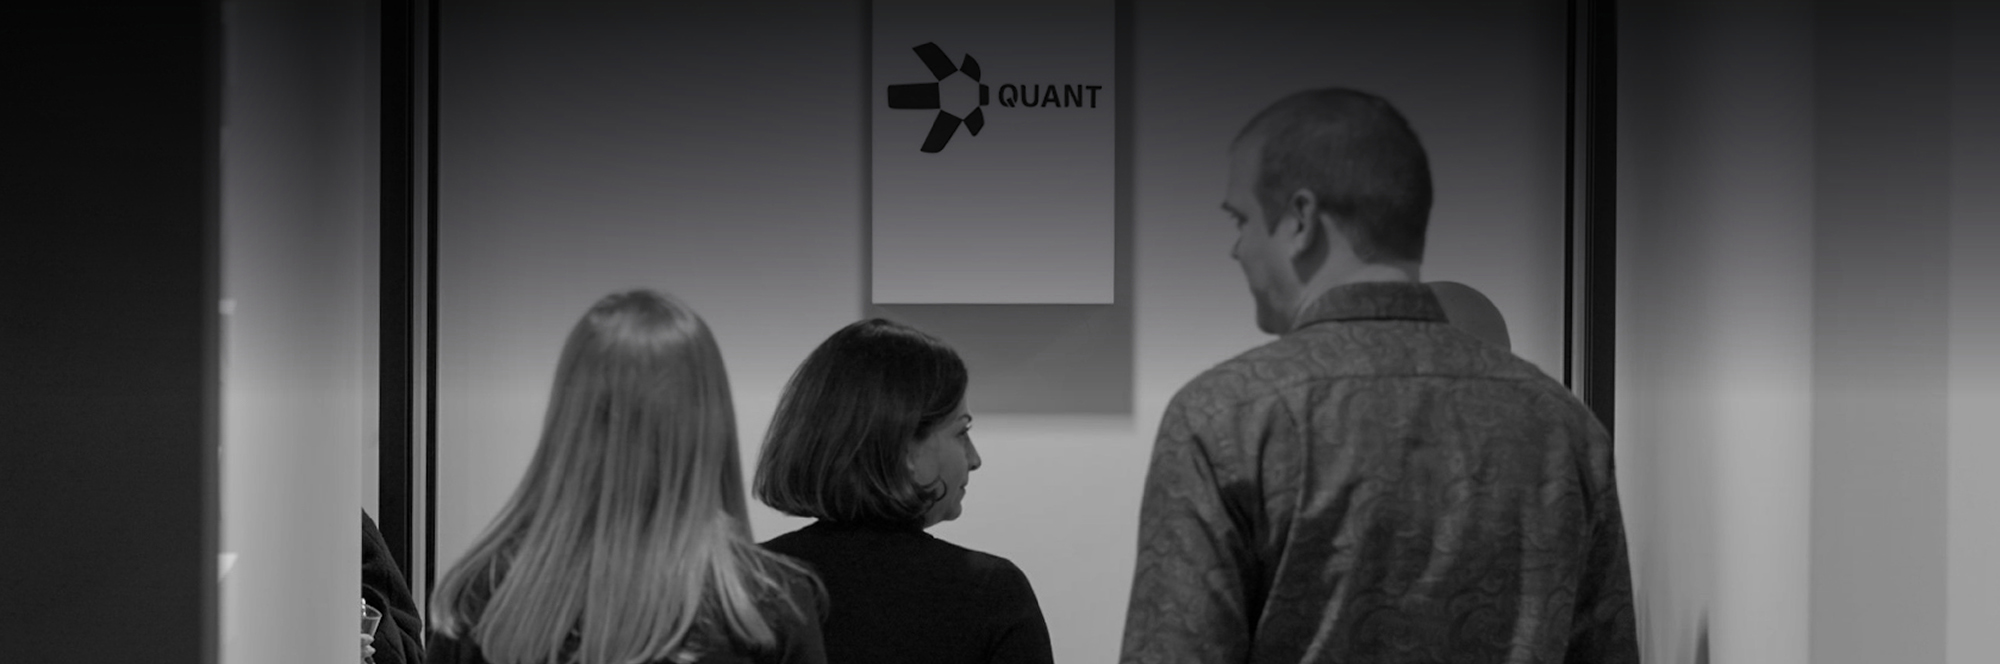 job offerings at Quant, members of management team, Quant sign, dark logo on white background